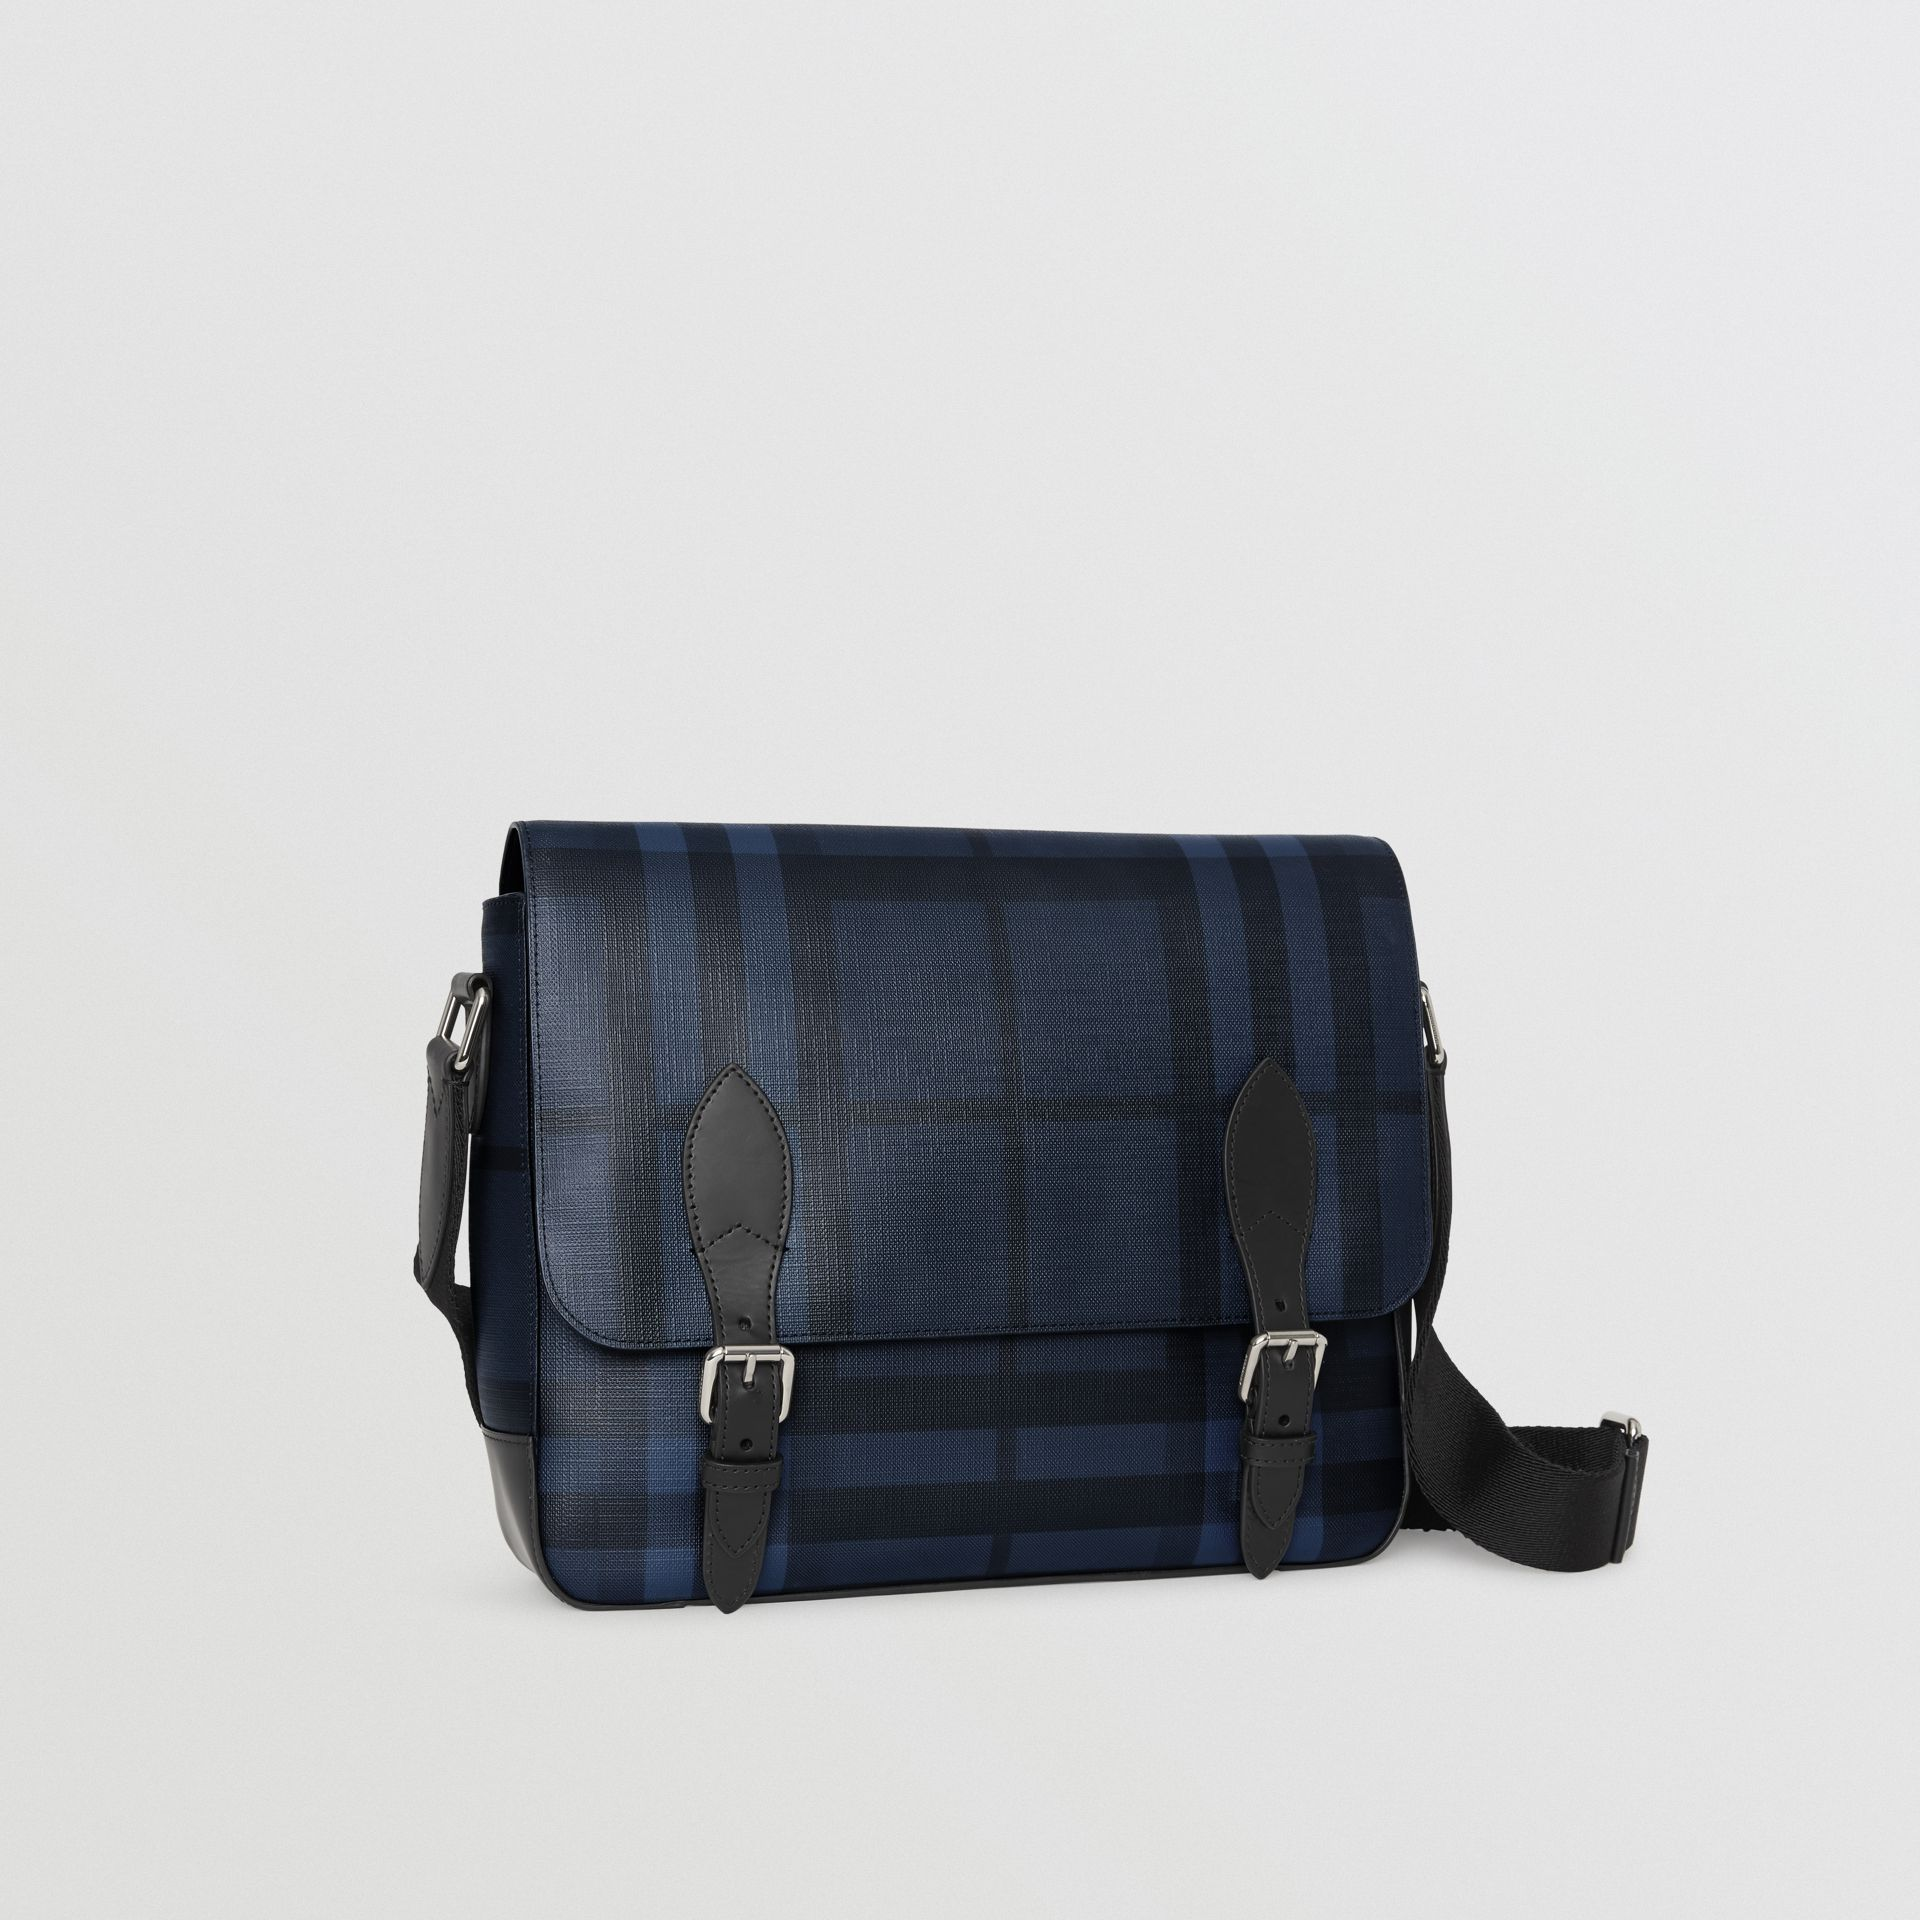 Medium Leather Trim London Check Messenger Bag in Navy/black - Men | Burberry Singapore - gallery image 6